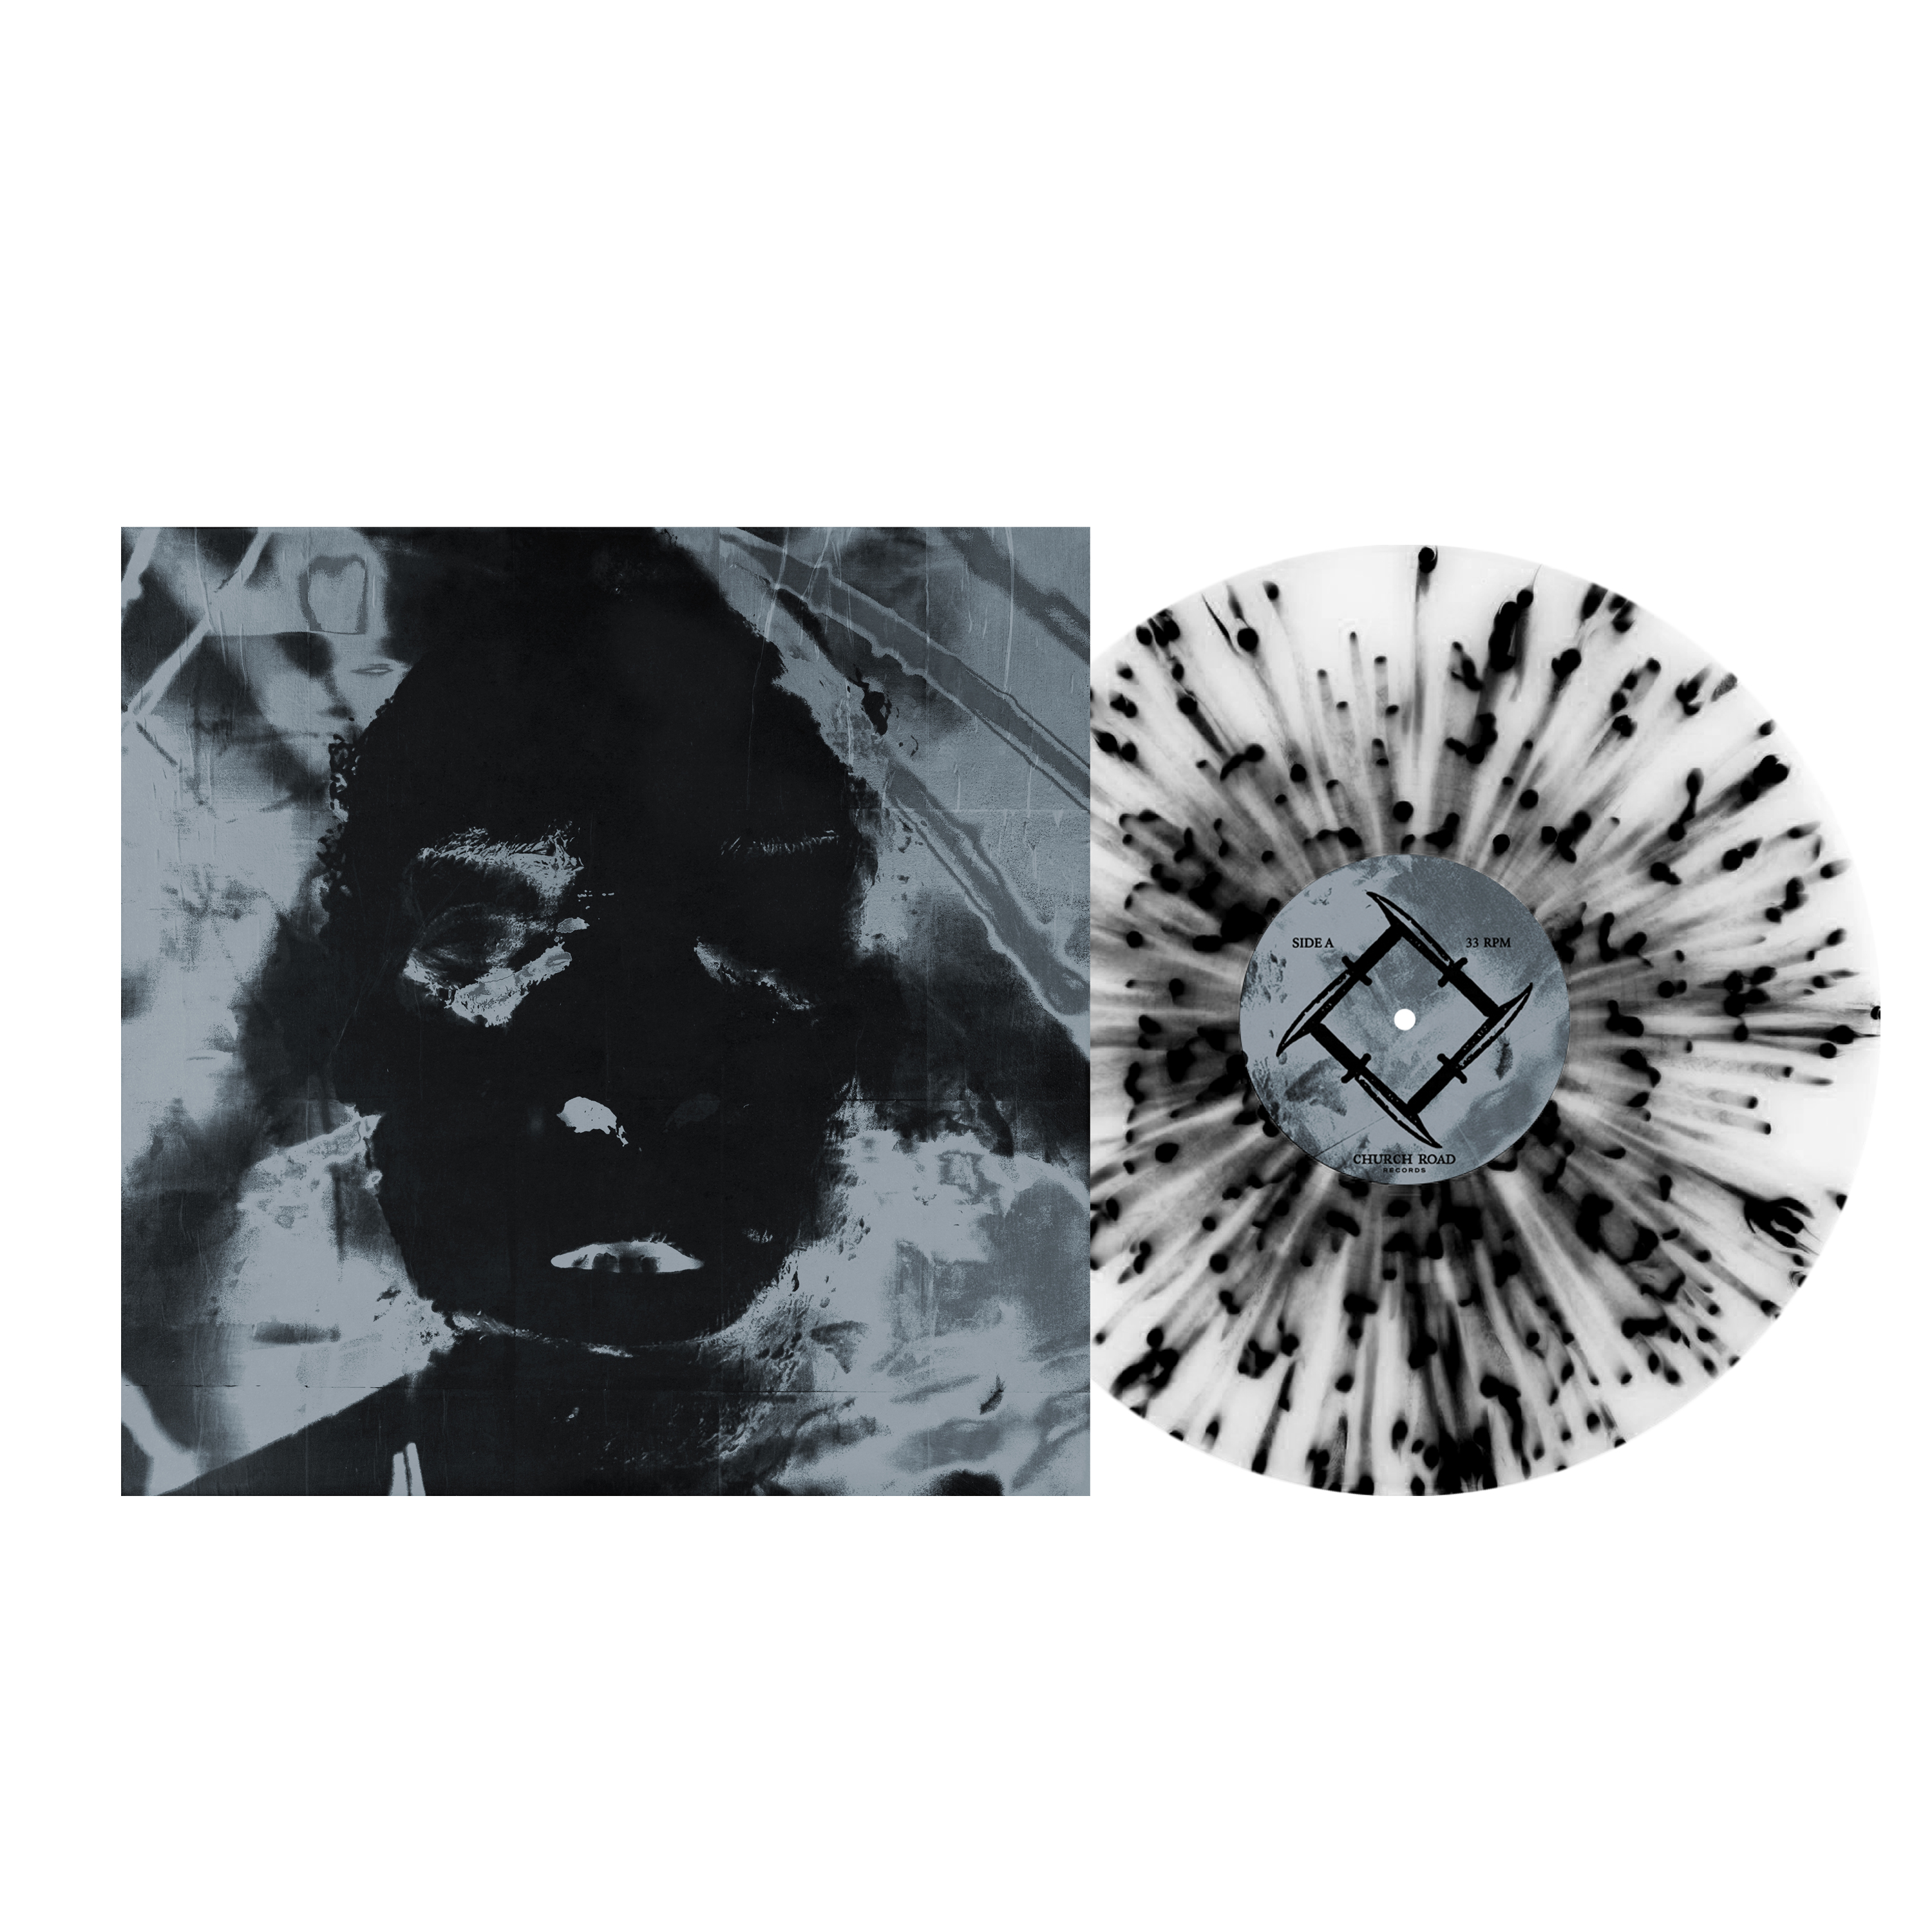 Cruelty - There Is No God Where I Am PRE-ORDER